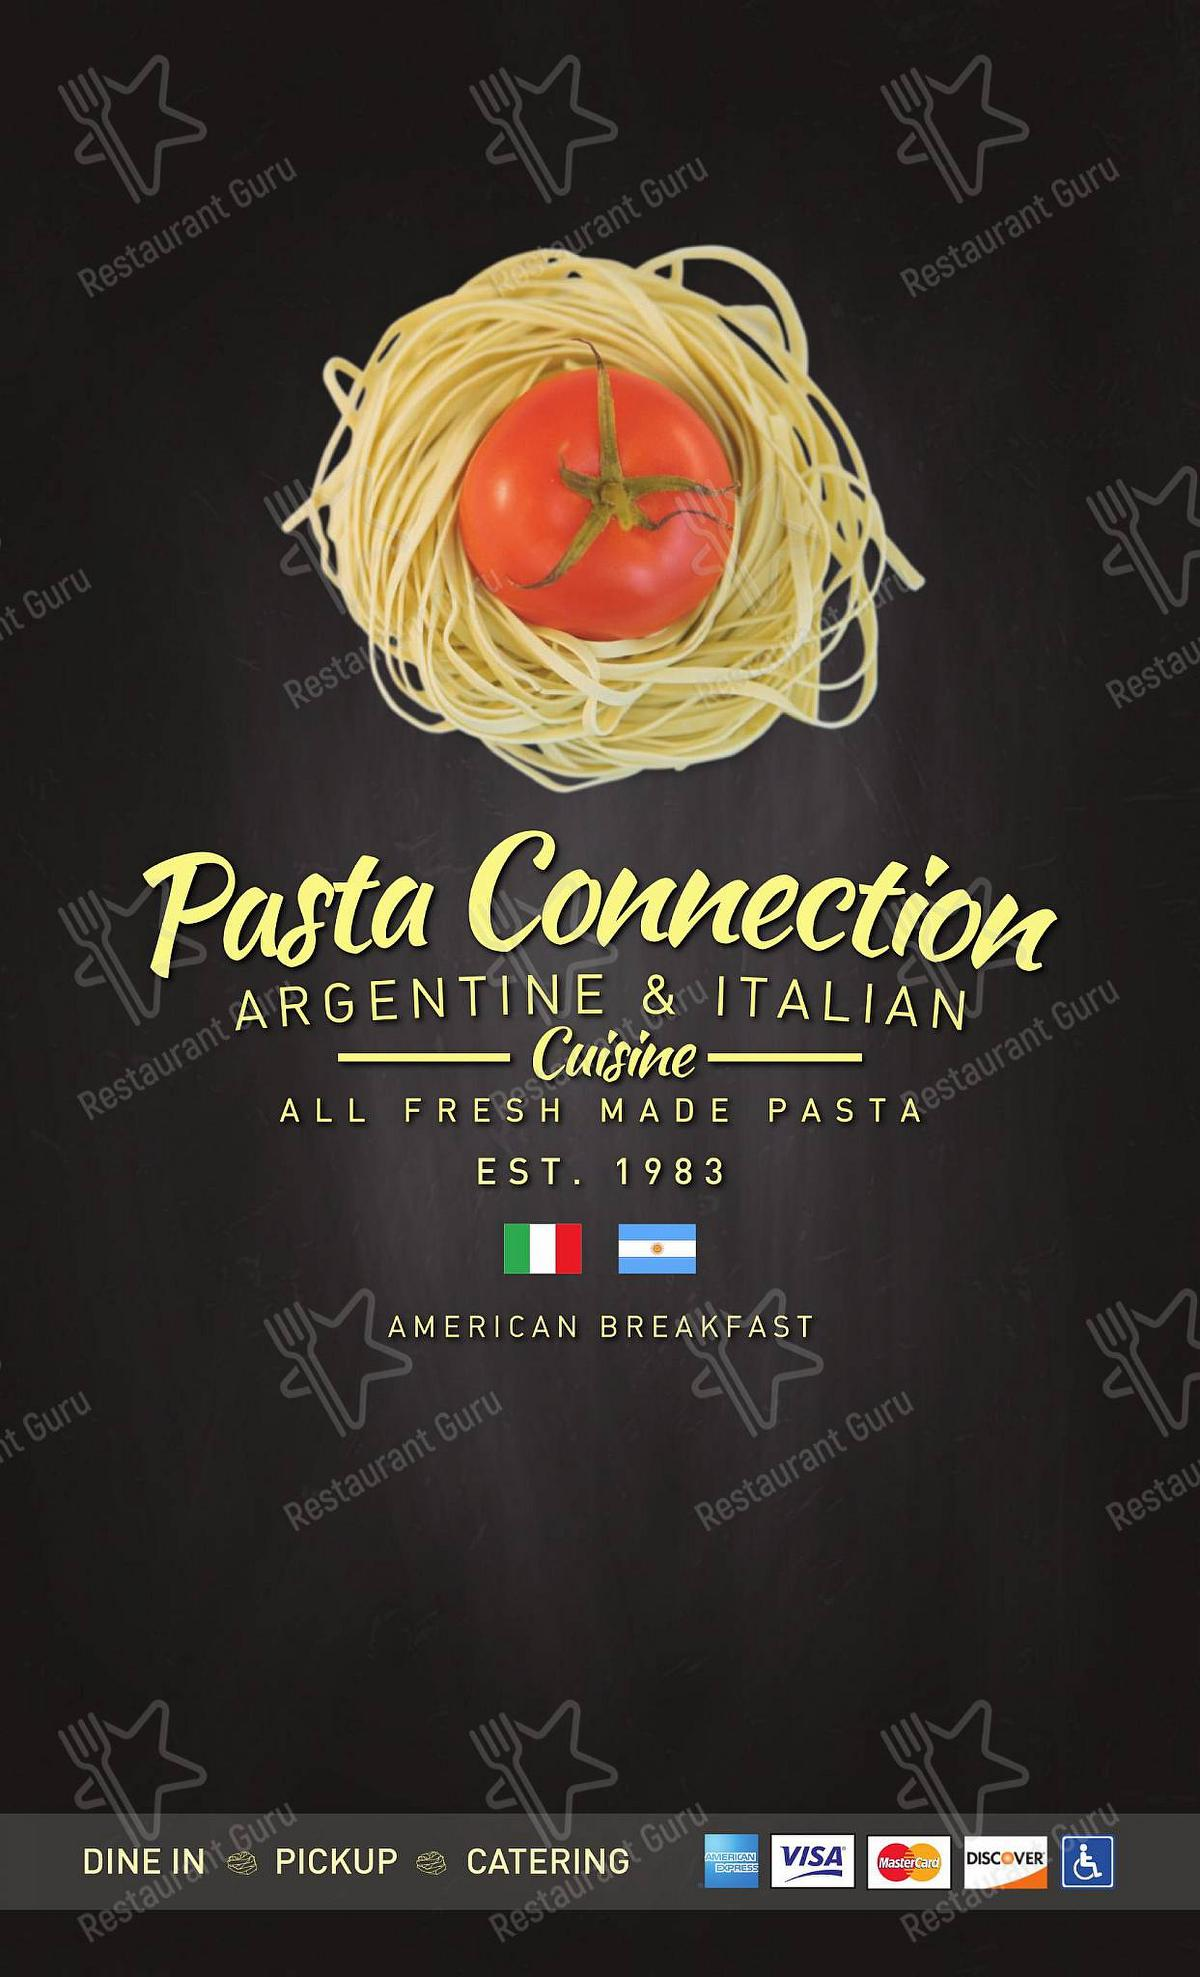 Dinner Menu for the Pasta Connection pizzeria